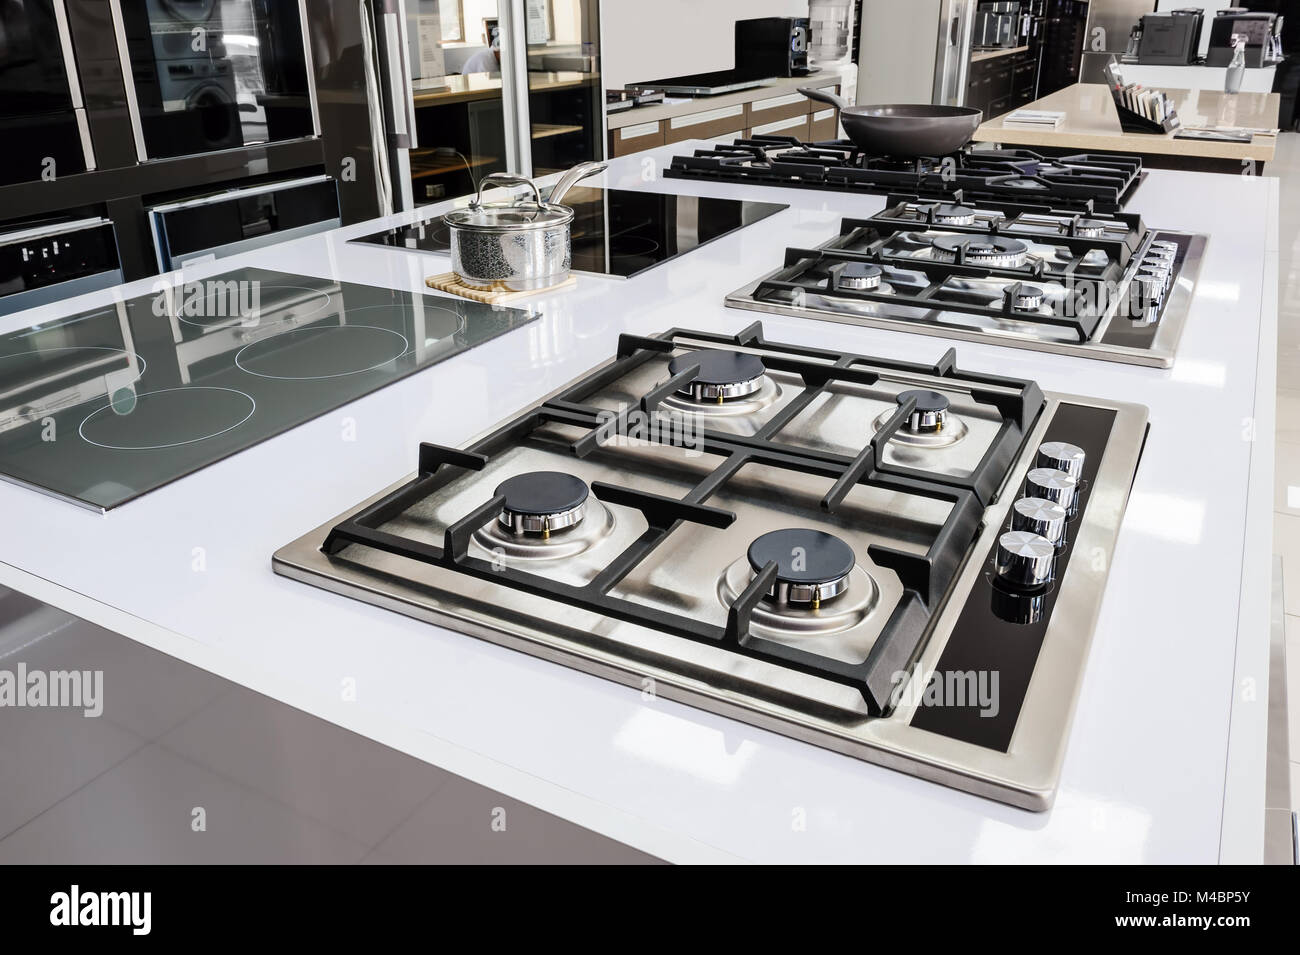 Brand new gas stoves - Stock Image